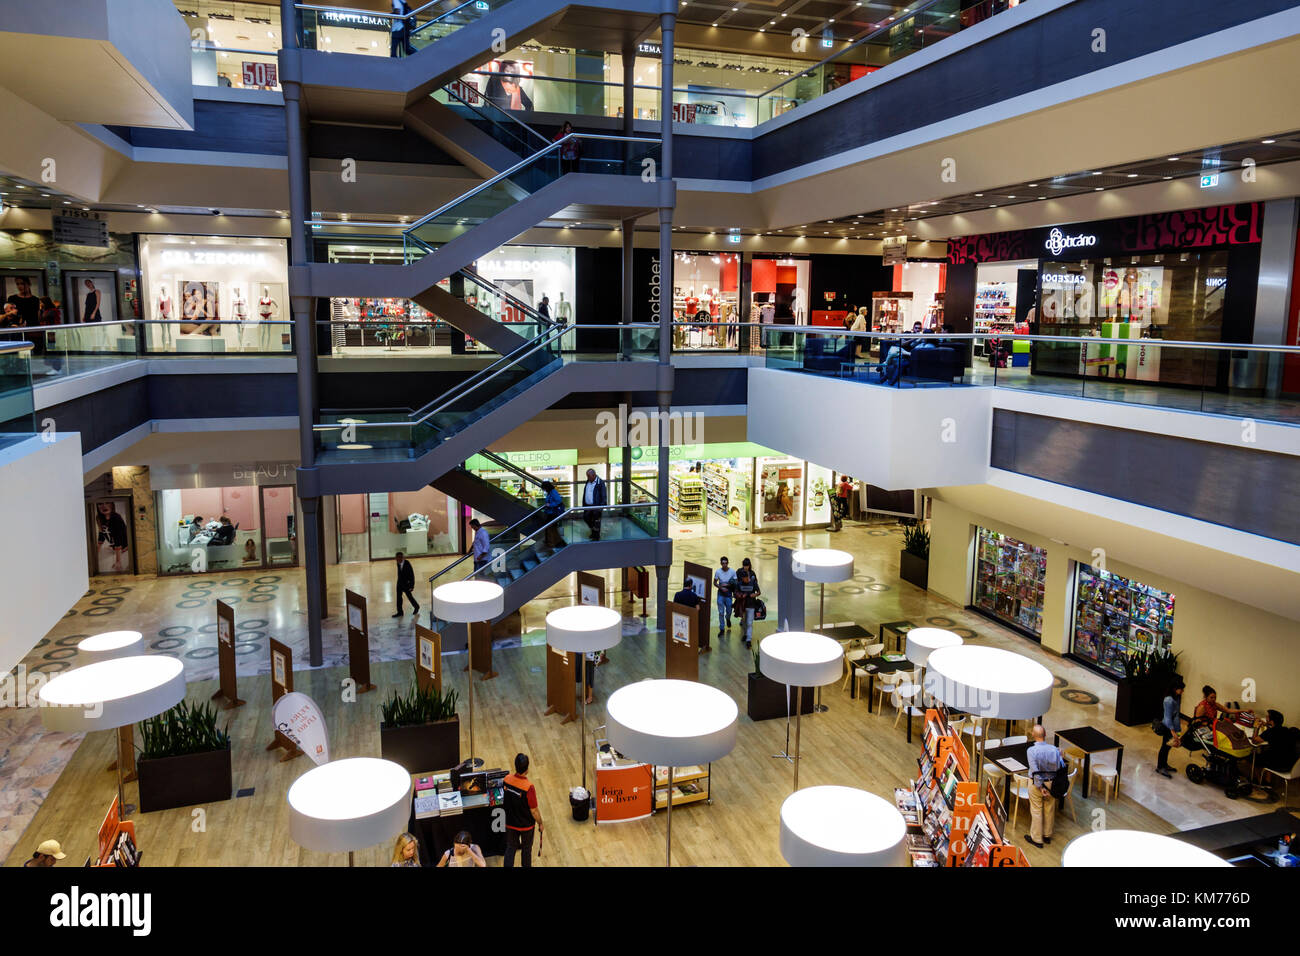 7f304245043 Porto Portugal Boavista Shopping Cidade do Porto shopping center centre  mall atrium stores shopping multi-levels stairs